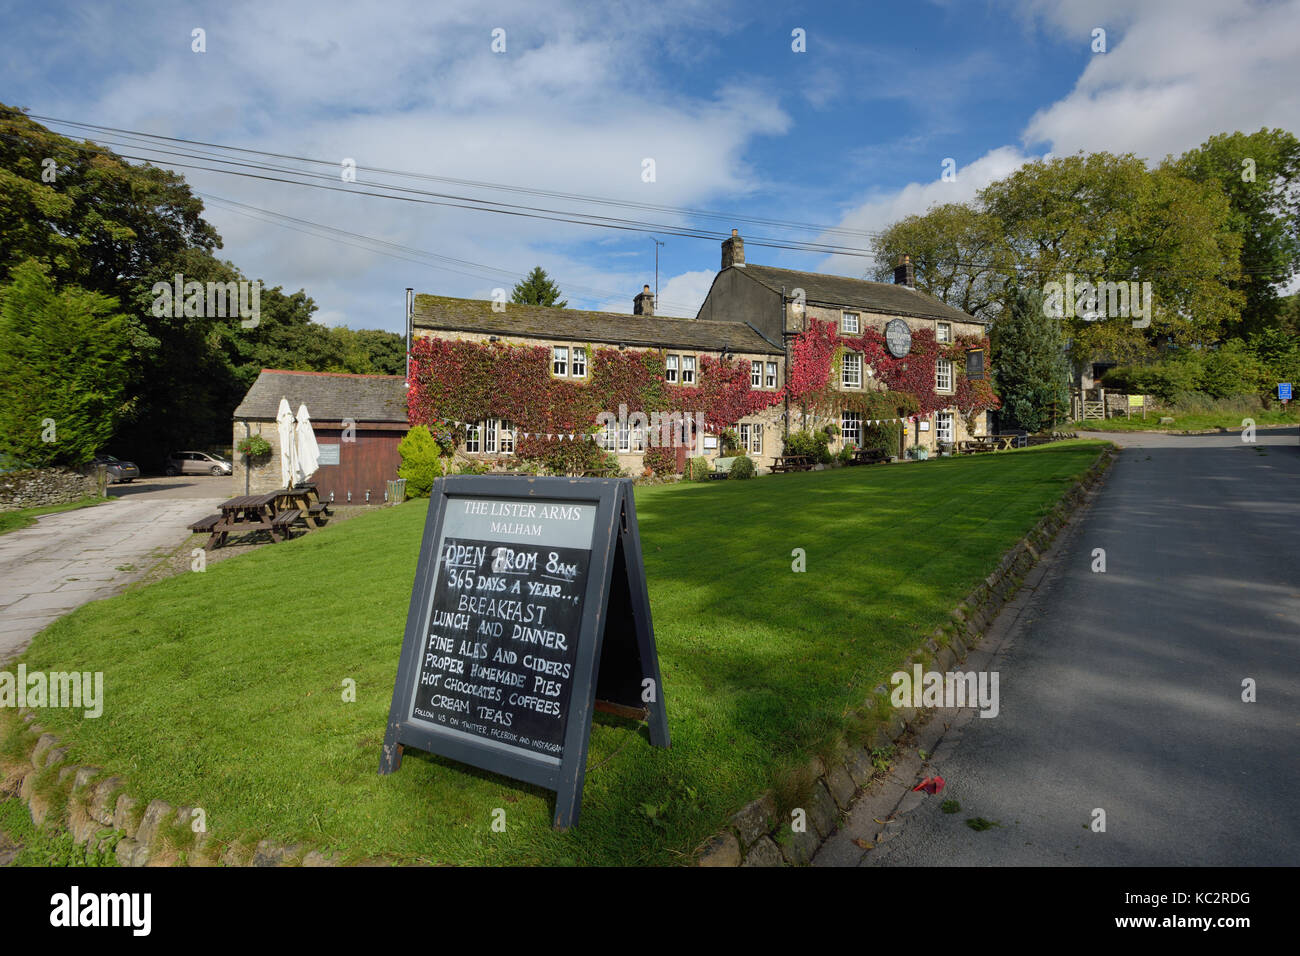 The Lister Arms, Malham, Yorkshire Dales National Park - Stock Image